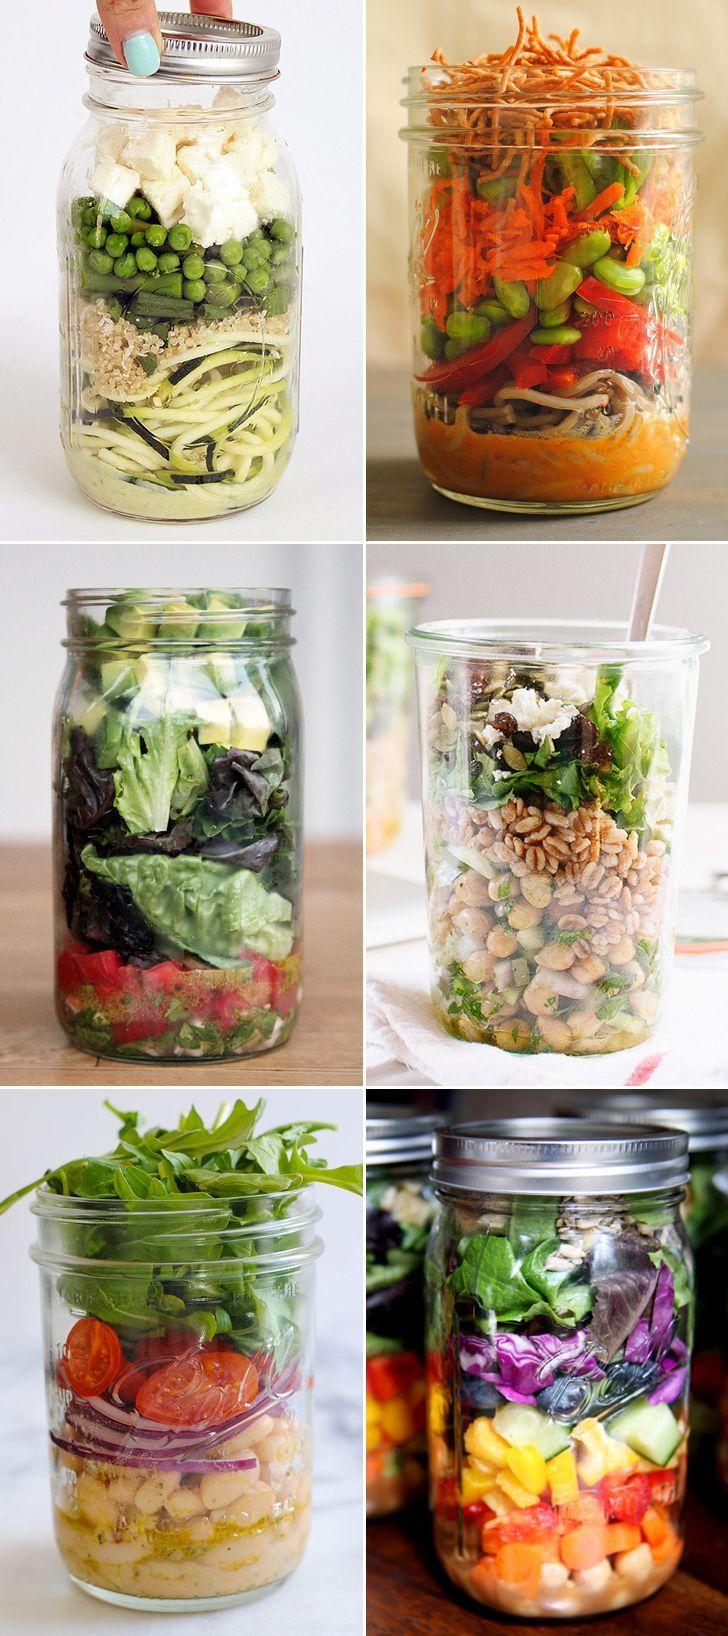 A crisp, crunchy salad makes the perfect lunch. These 15 recipes will help you step up your lunches for good. #healthy #salad #lunches